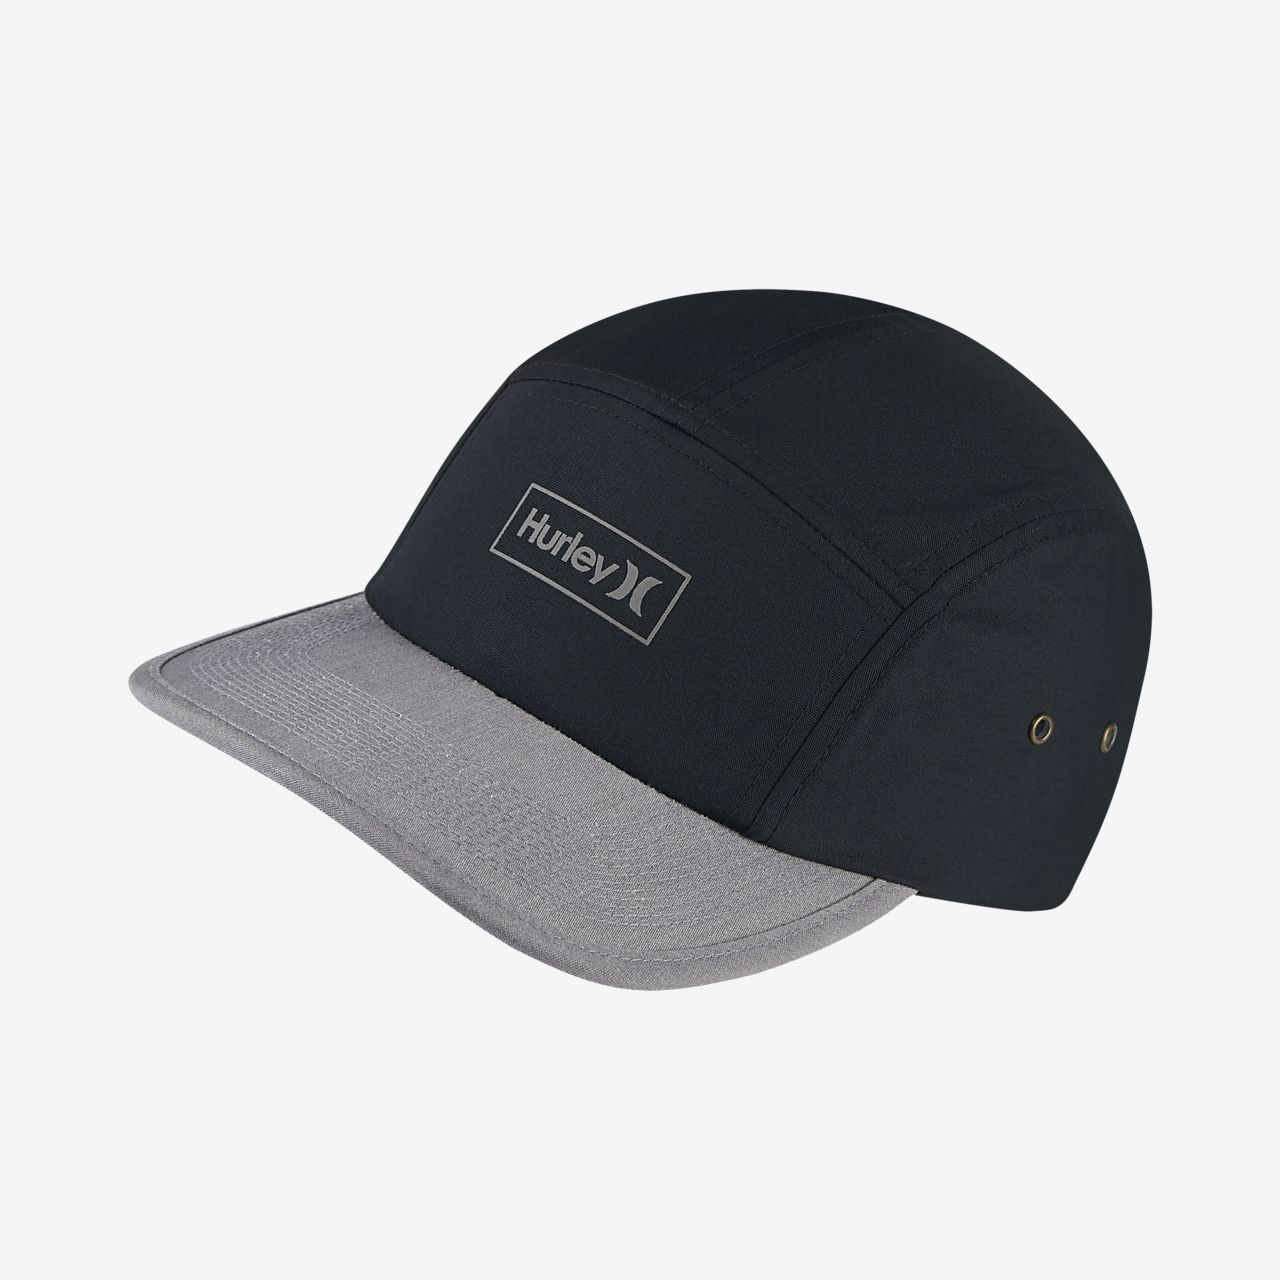 8e724c56b9fb Adjustable Hat. Hurley Maritime.  23.97.  32. Low Resolution ...